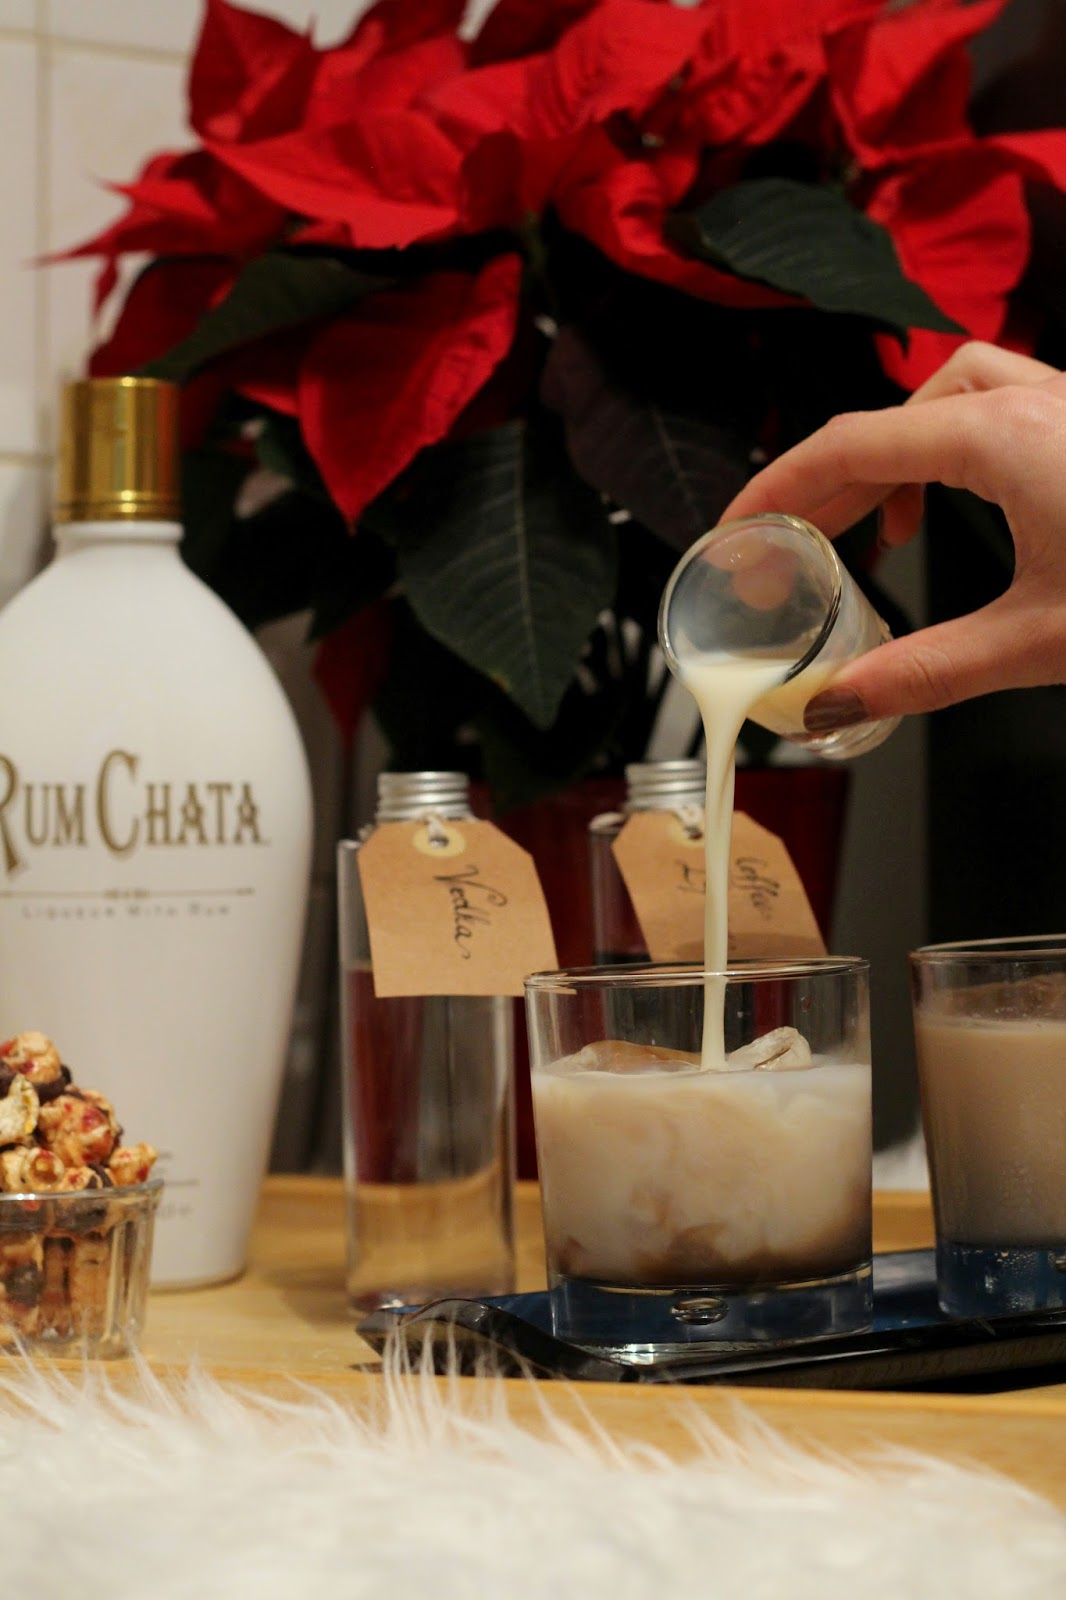 coffee cocktail RumChata peexo